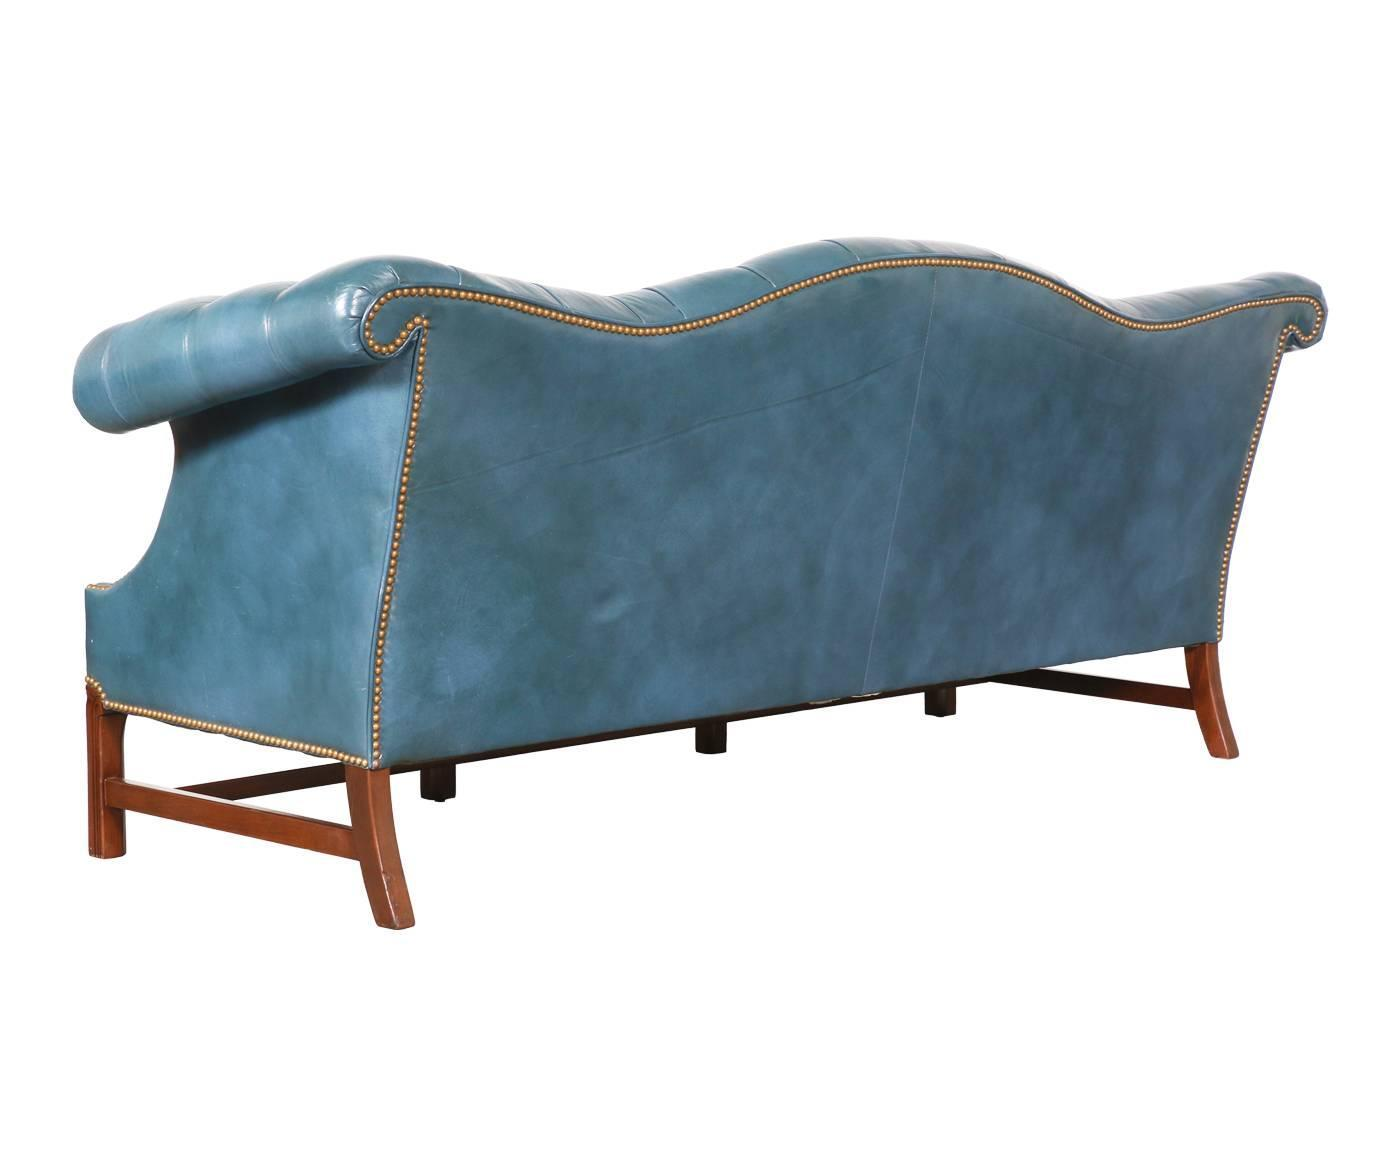 Vintage english leather teal blue chesterfield sofa for for Teal leather sofa